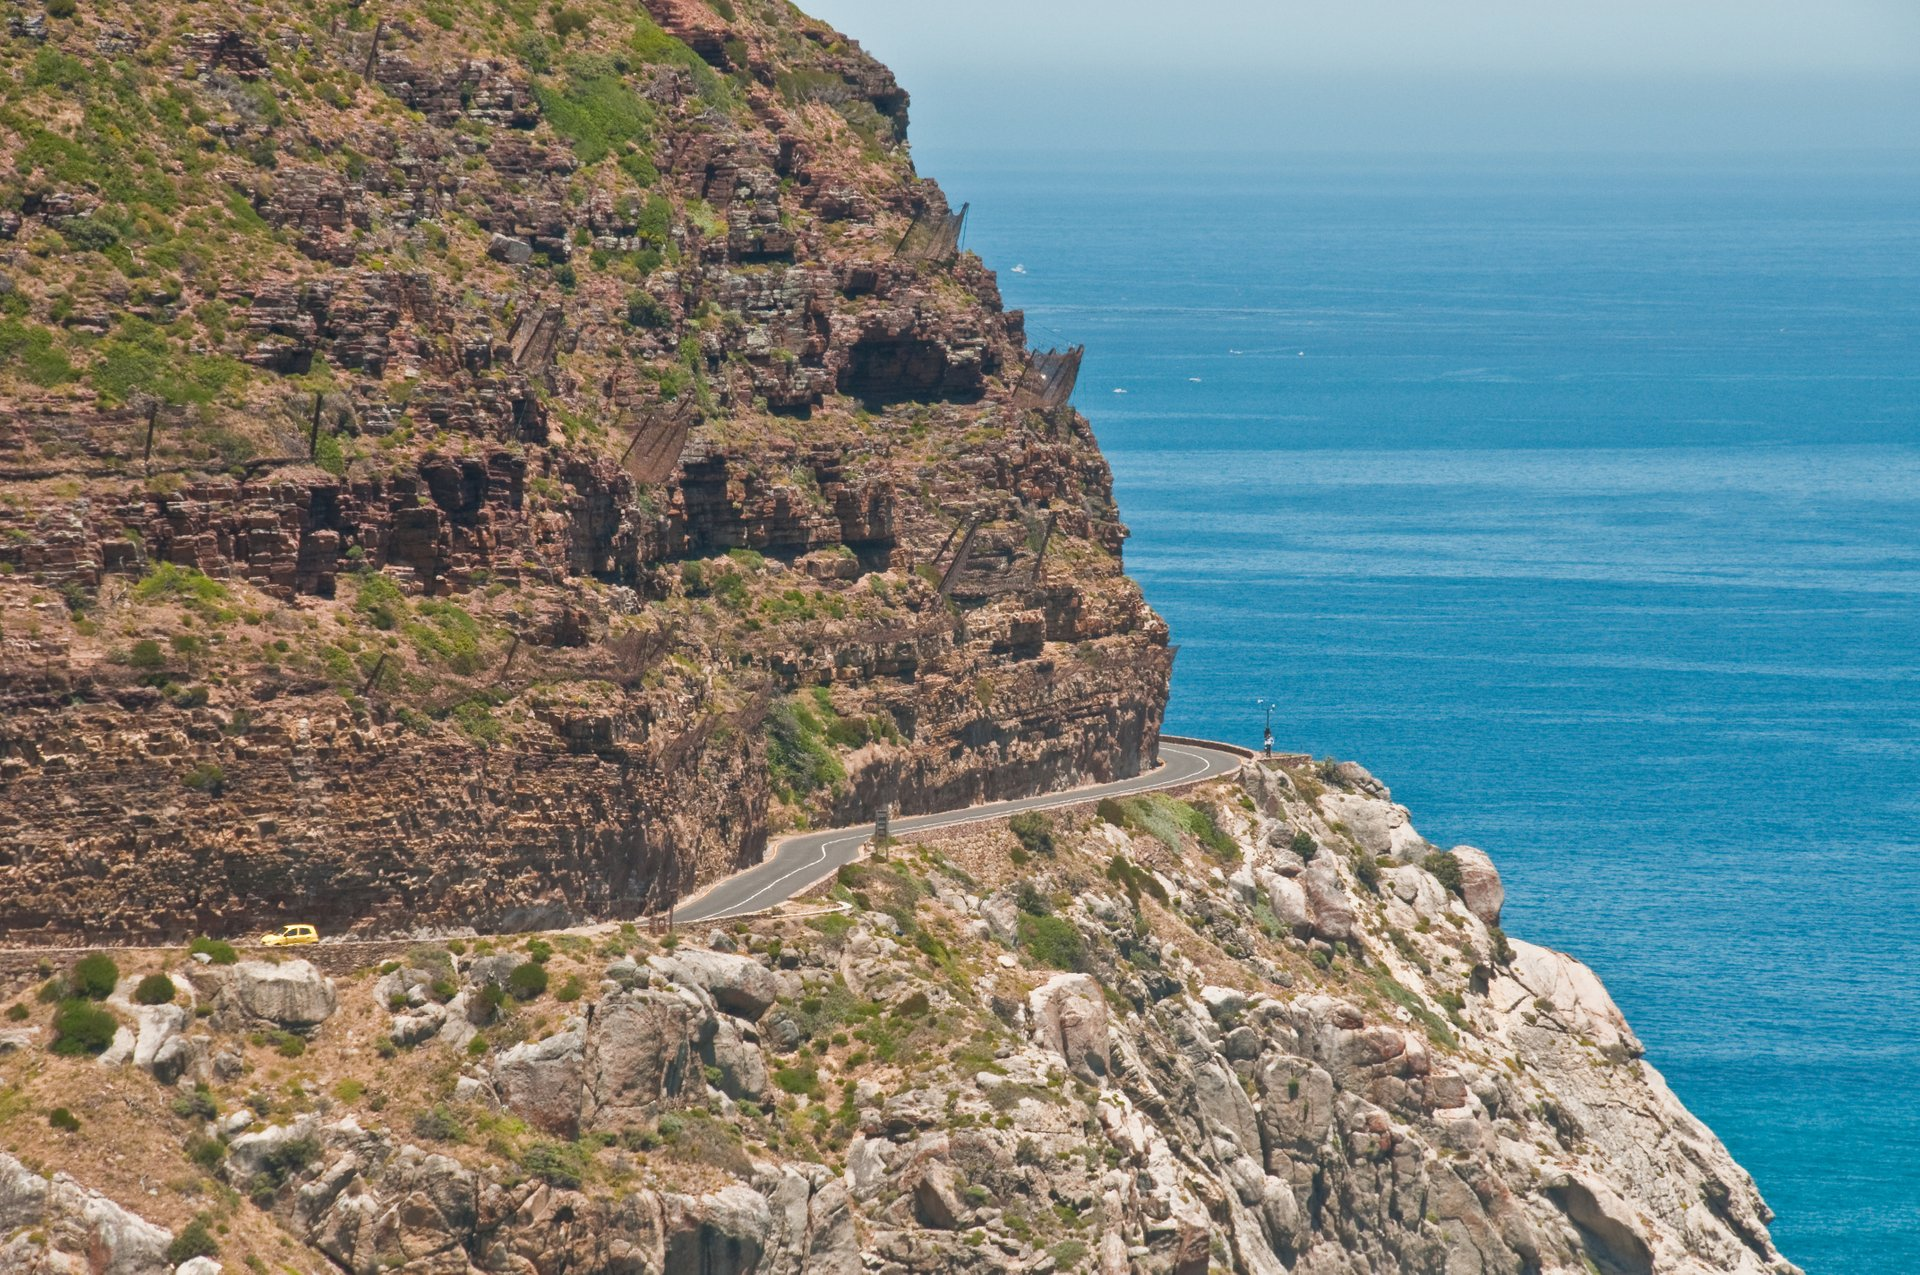 Chapman's Peak Drive in Cape Town 2020 - Best Time